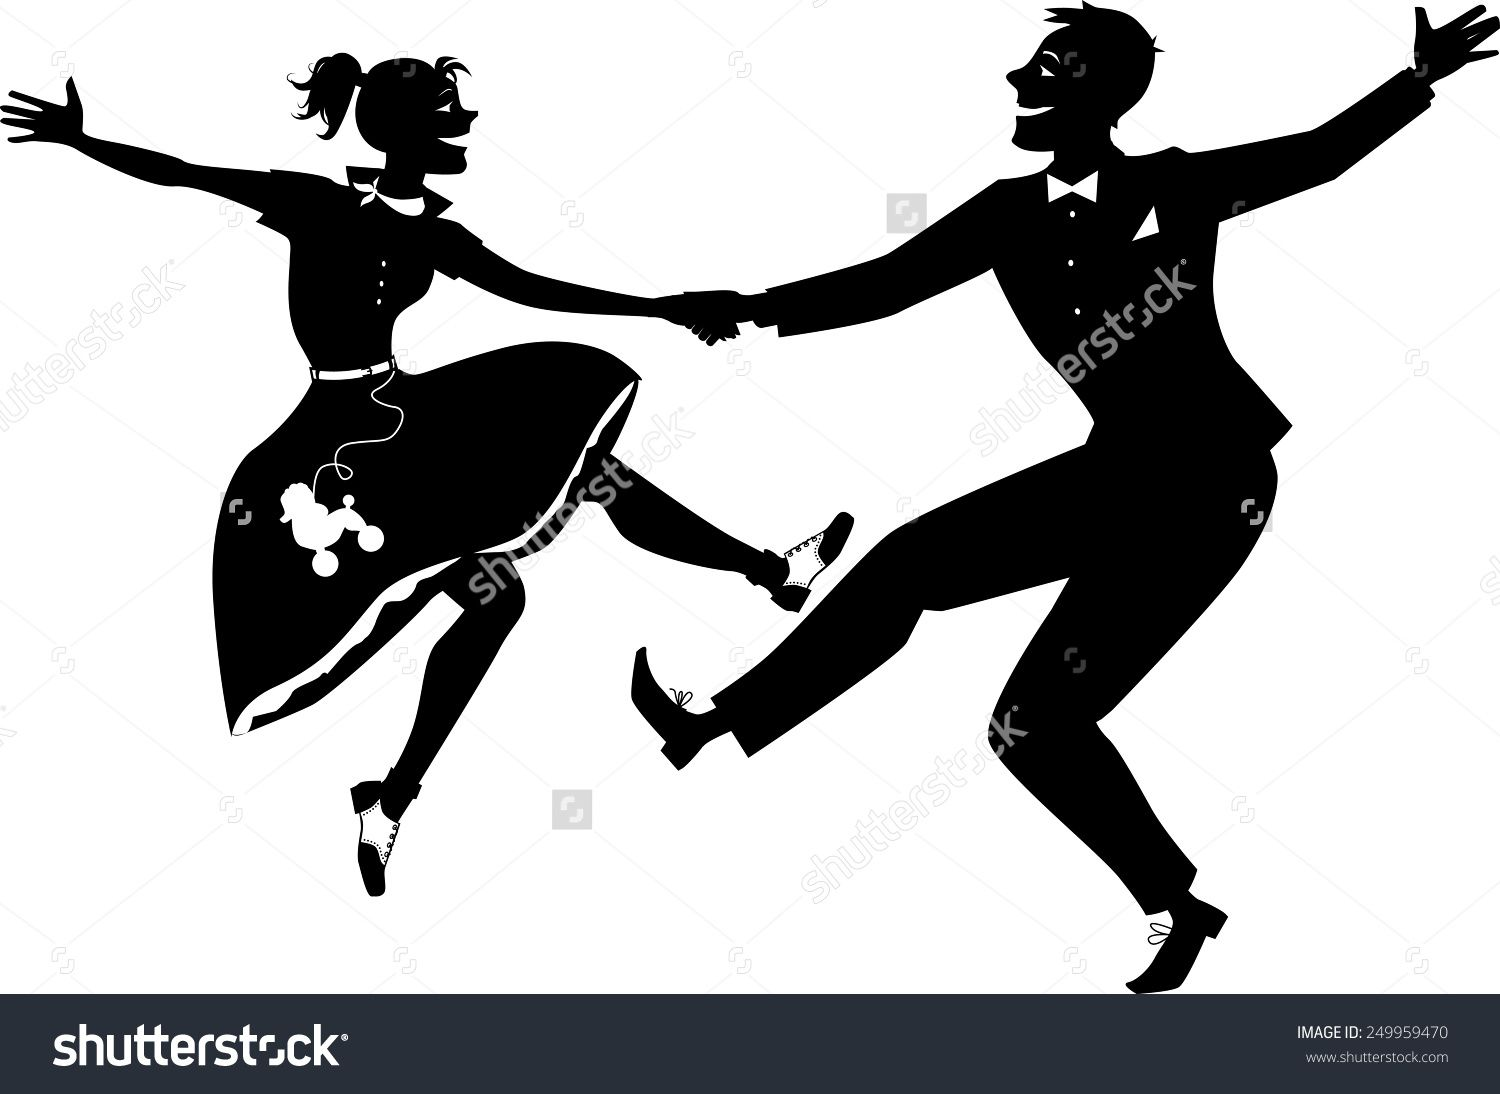 Black vector silhouette of a couple dressed in 1950s fashion.